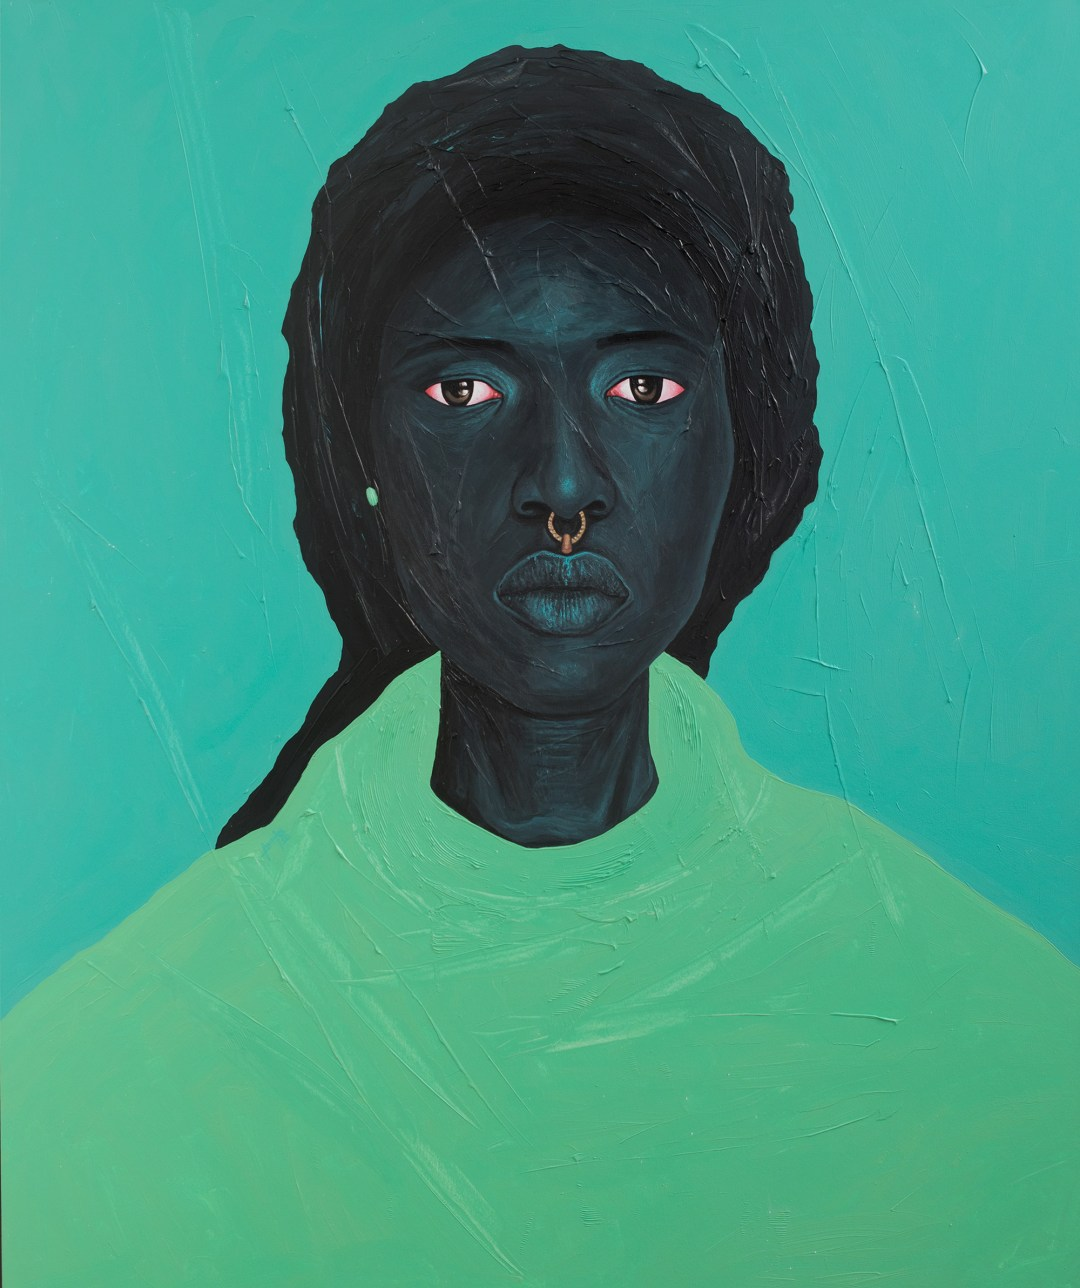 Red-Eyed Subjects Peer Forward in Bright, Impasto Portraits by Artist Annan Affotey